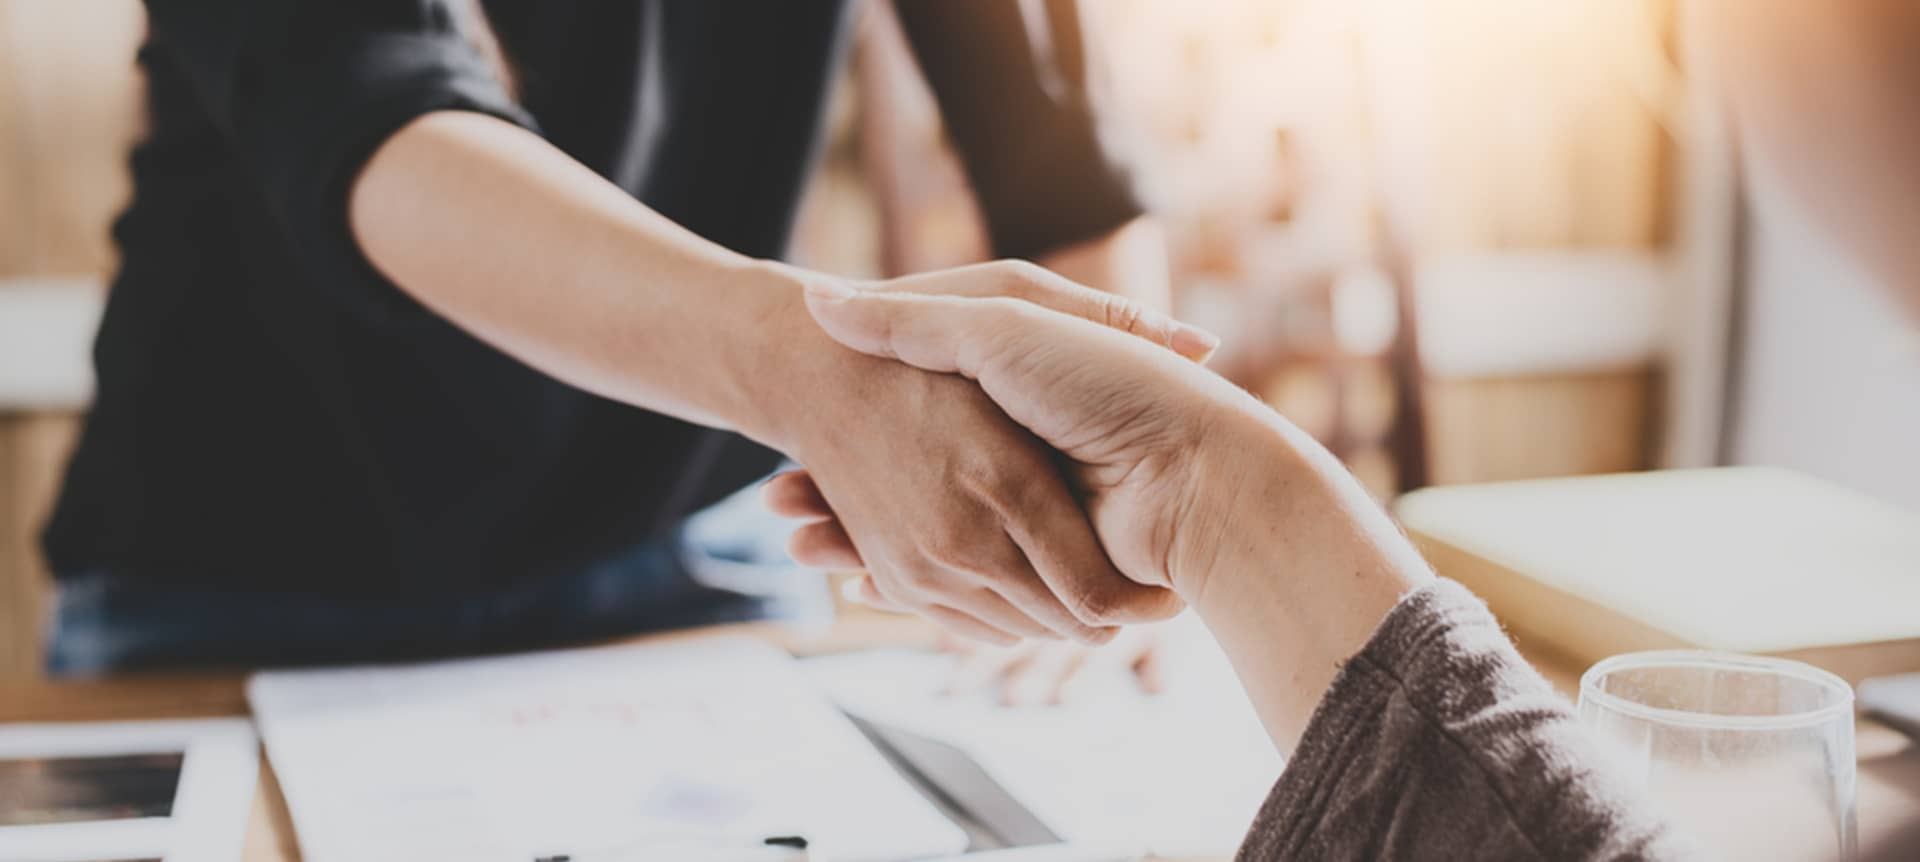 recruiter and candidate shaking hands